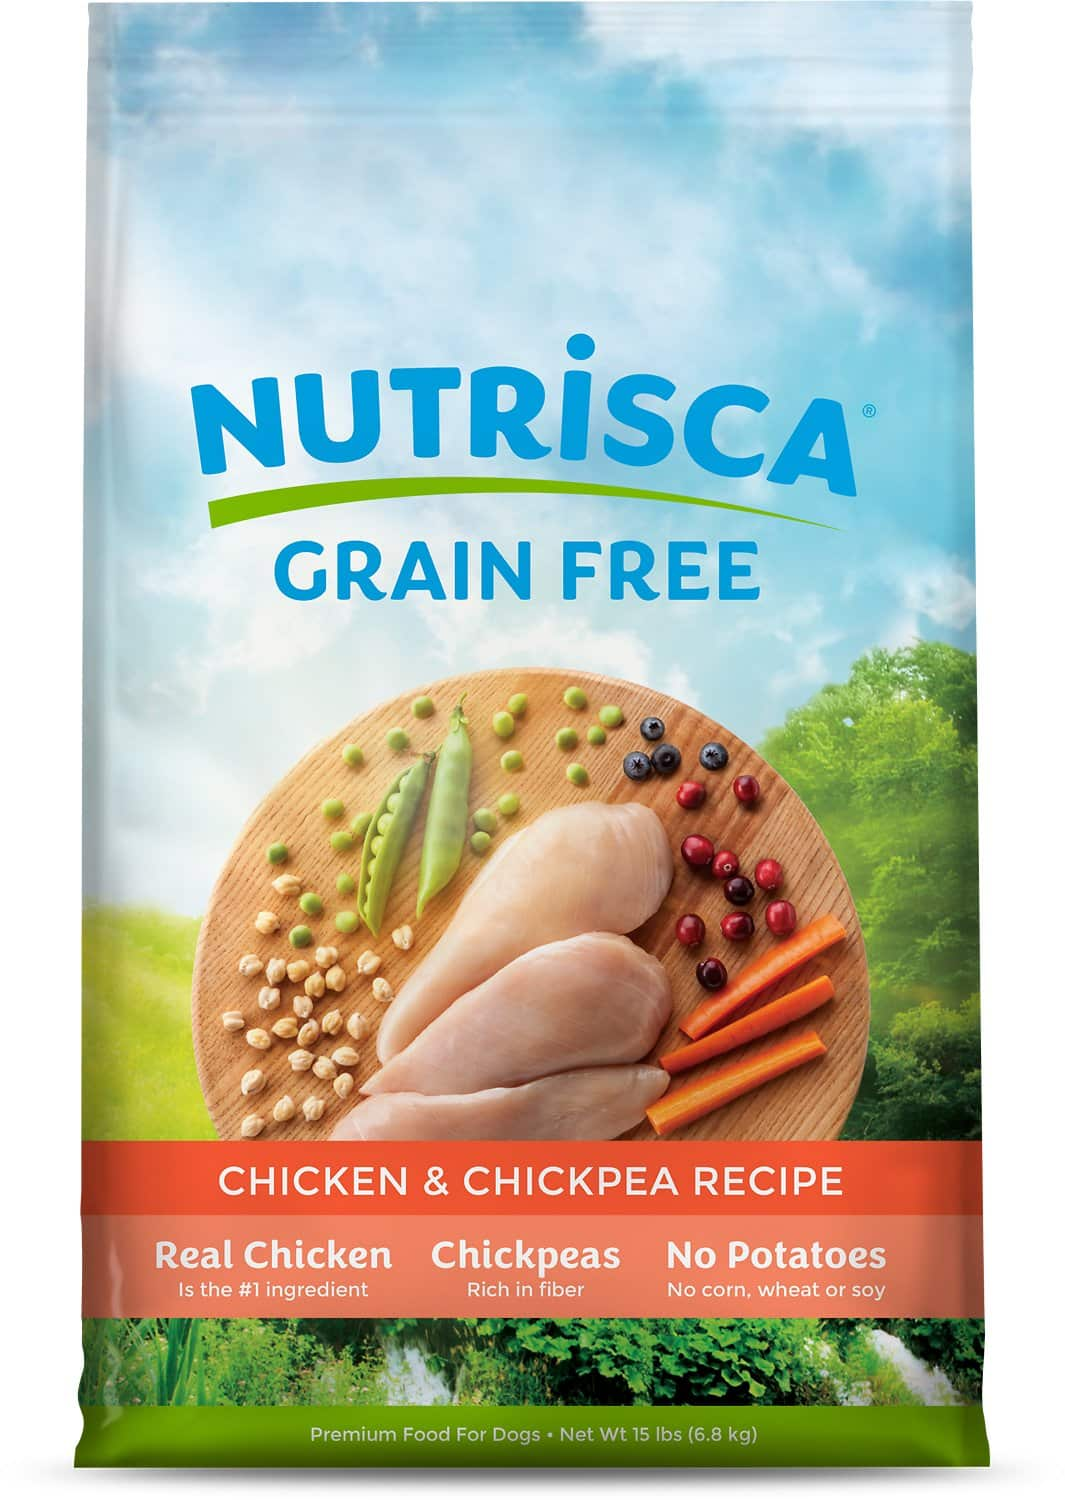 Nutrisca-Grain-Free-Food-Chicken-Flavor-by-Dogswell